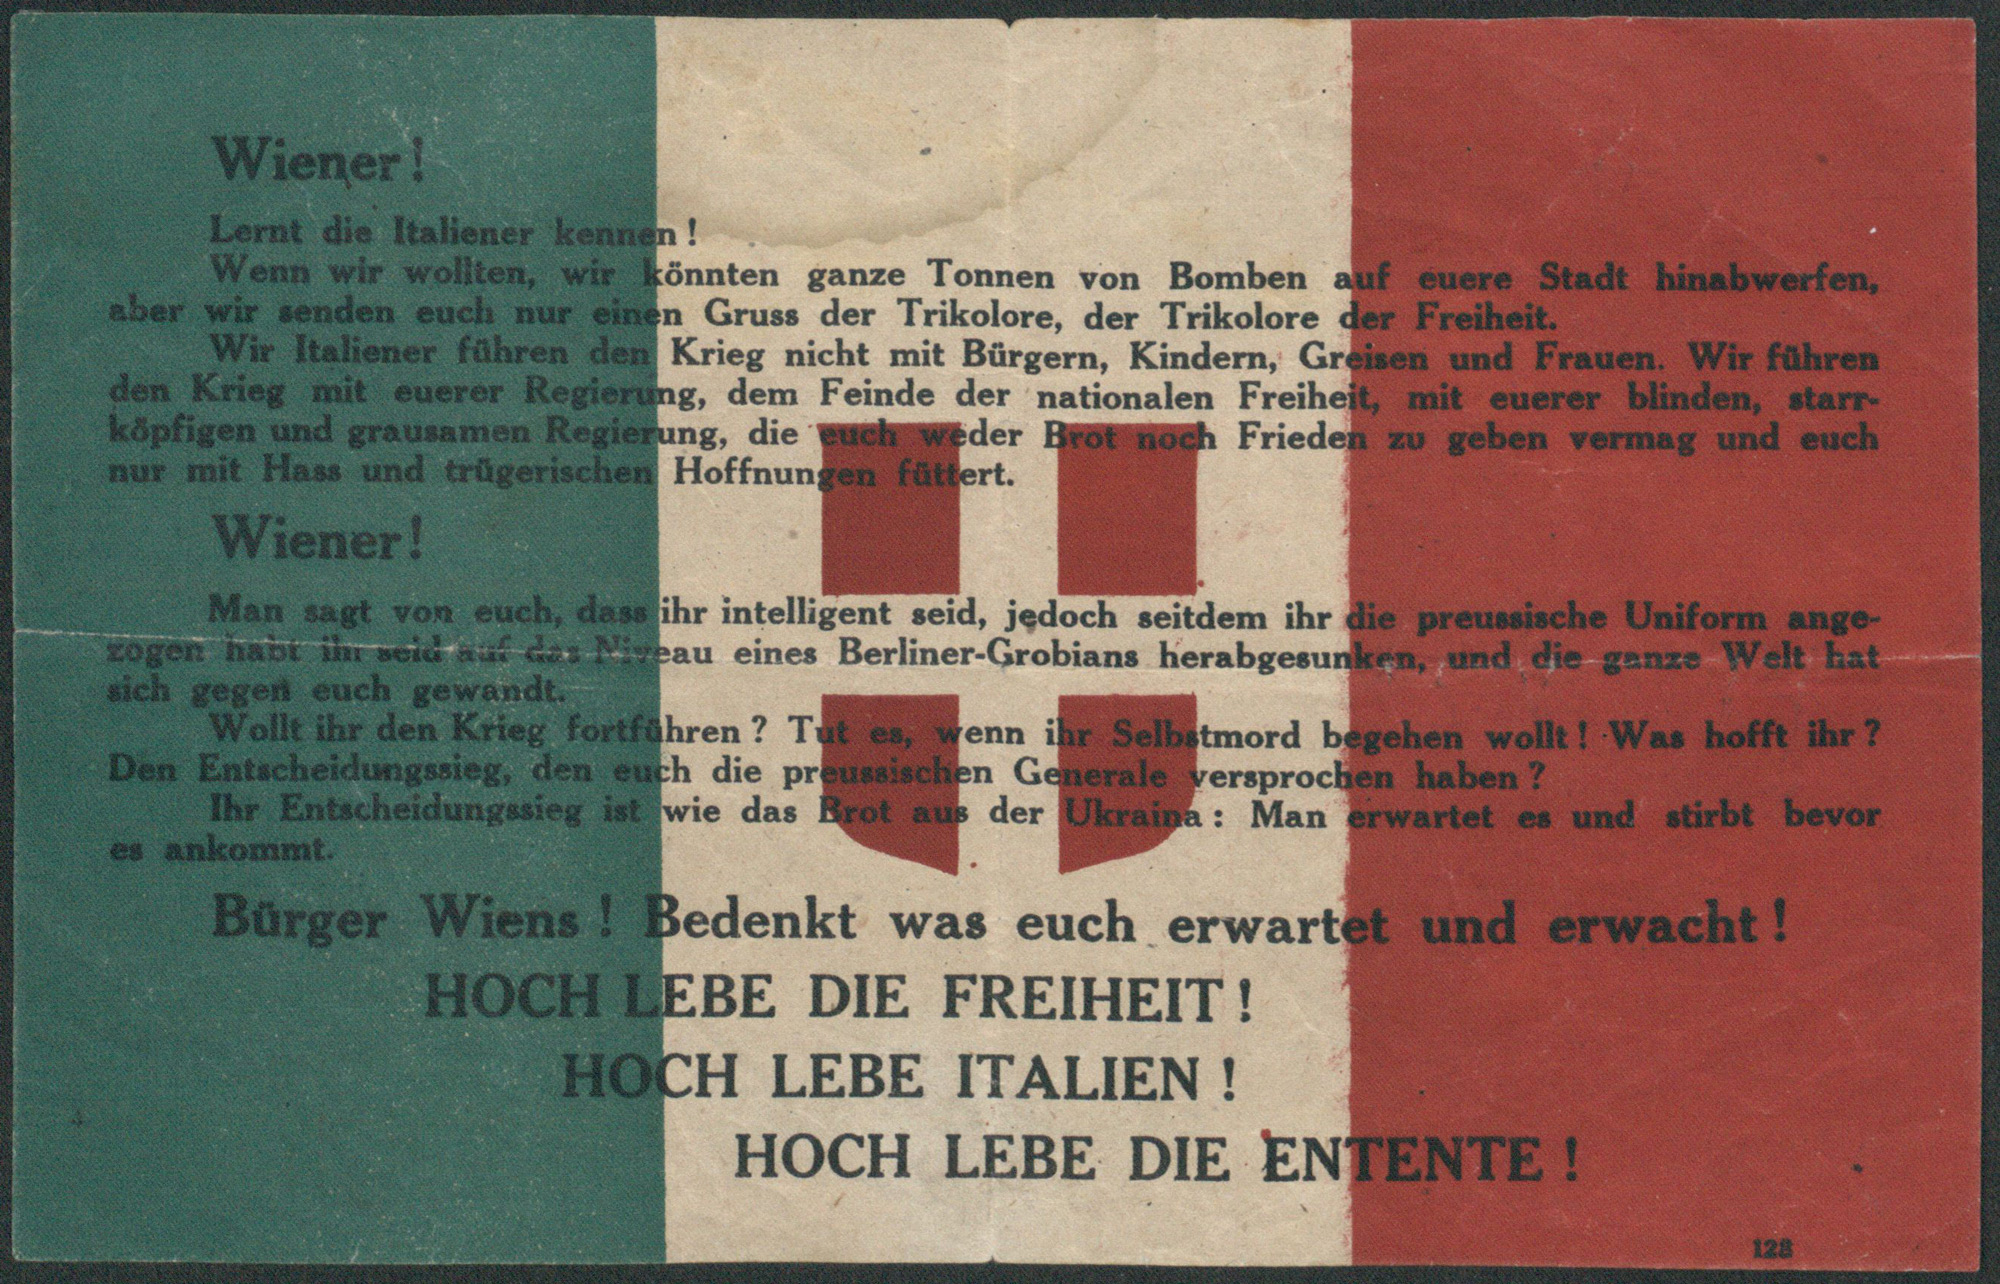 Example of a propaganda leaflet dropped by plane over Vienna on 9 August 1918 by the Italian writer Gabriele d'Annunzio. It states the social and political aims of Italy.